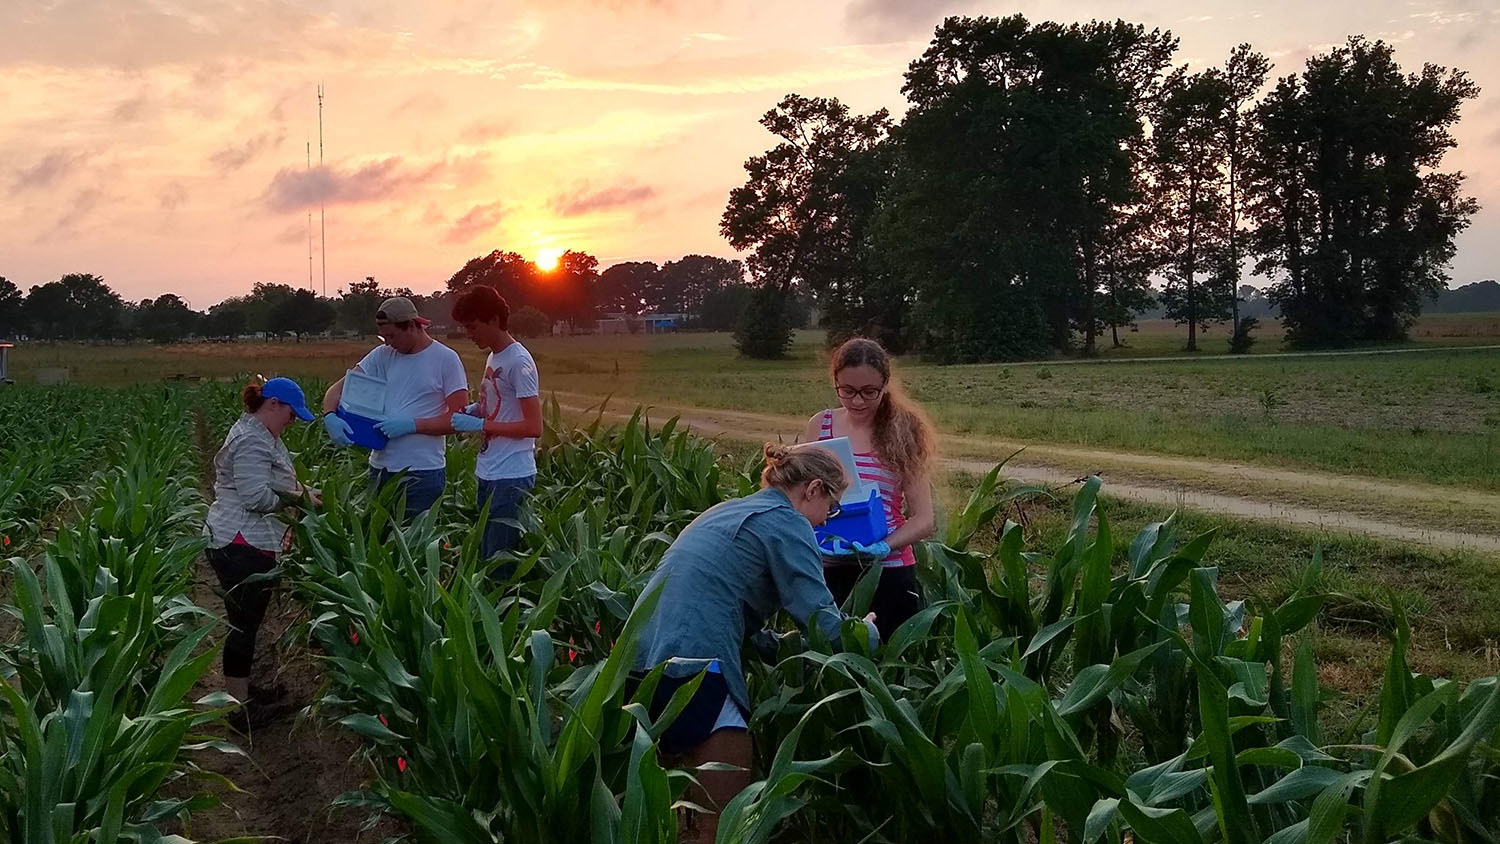 A group of students in a corn field as the sun sets. (From Summer 2019)